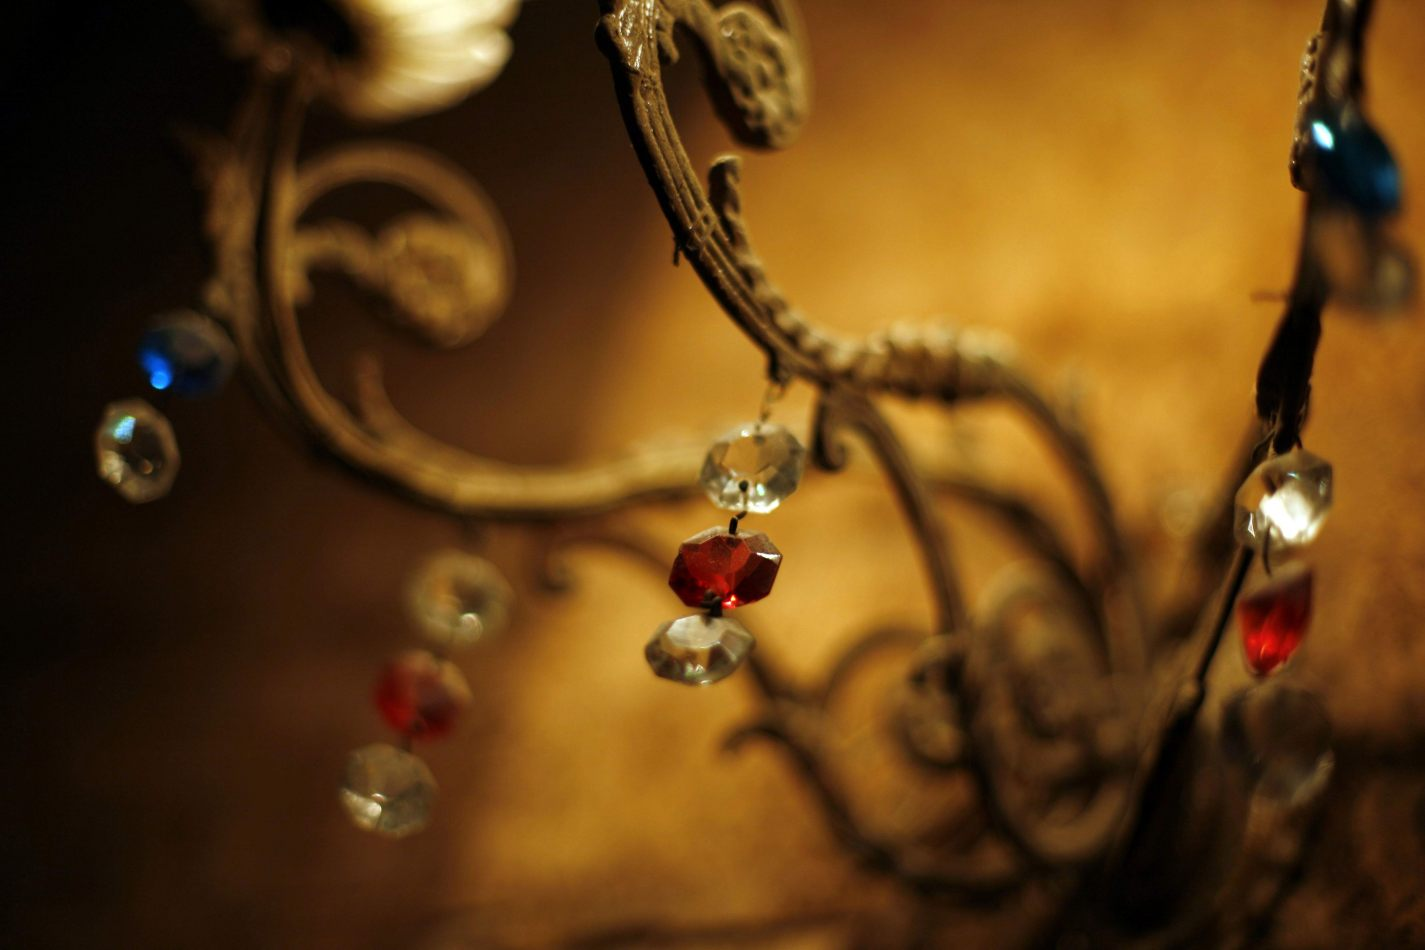 Anthony Ellis Photography: Submit to the Will - Jewels Hanging from Lights